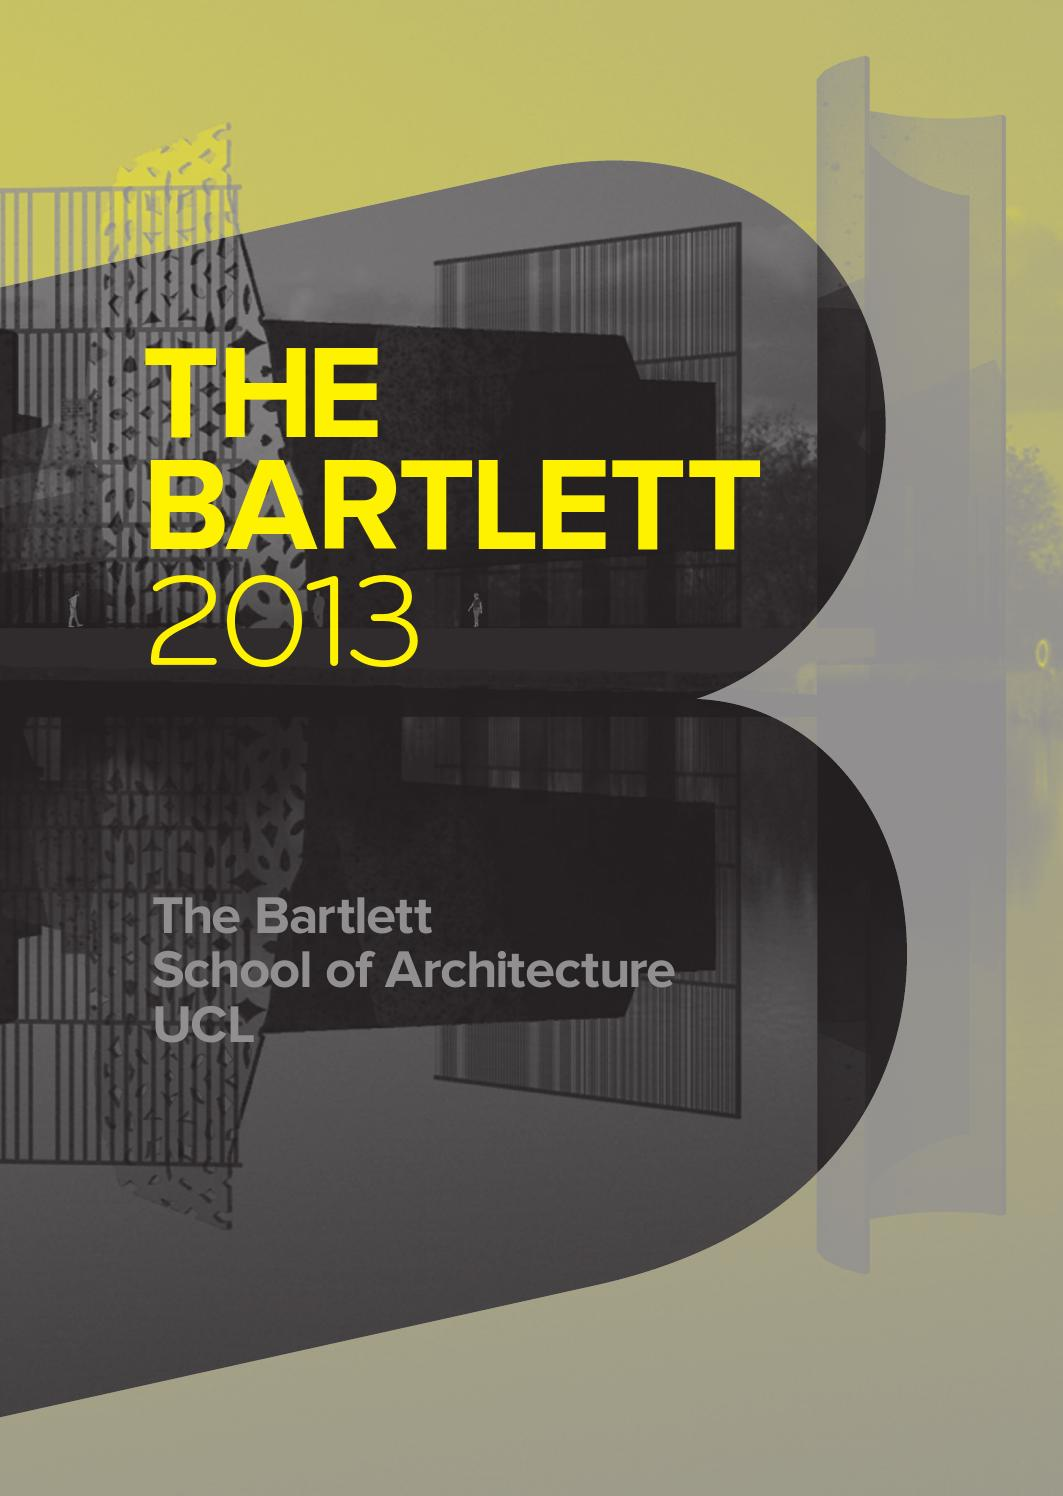 Bartlett Book      by The Bartlett School of Architecture UCL   issuu Issuu